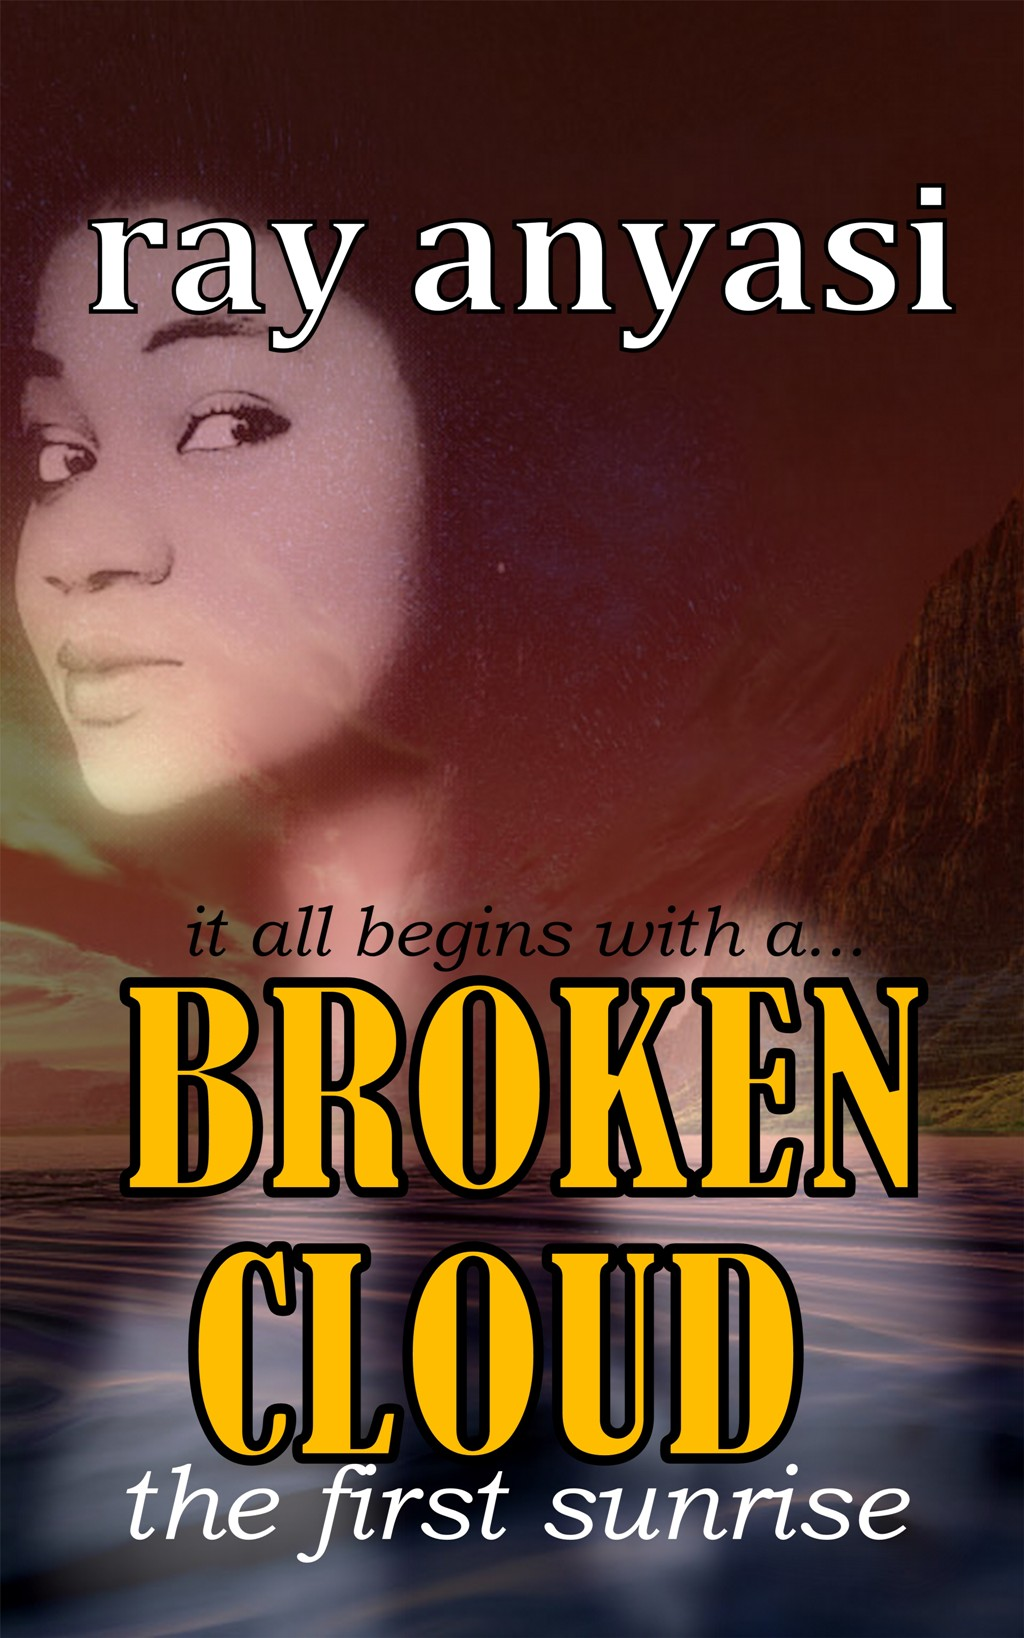 Broken Cloud: the first sunrise